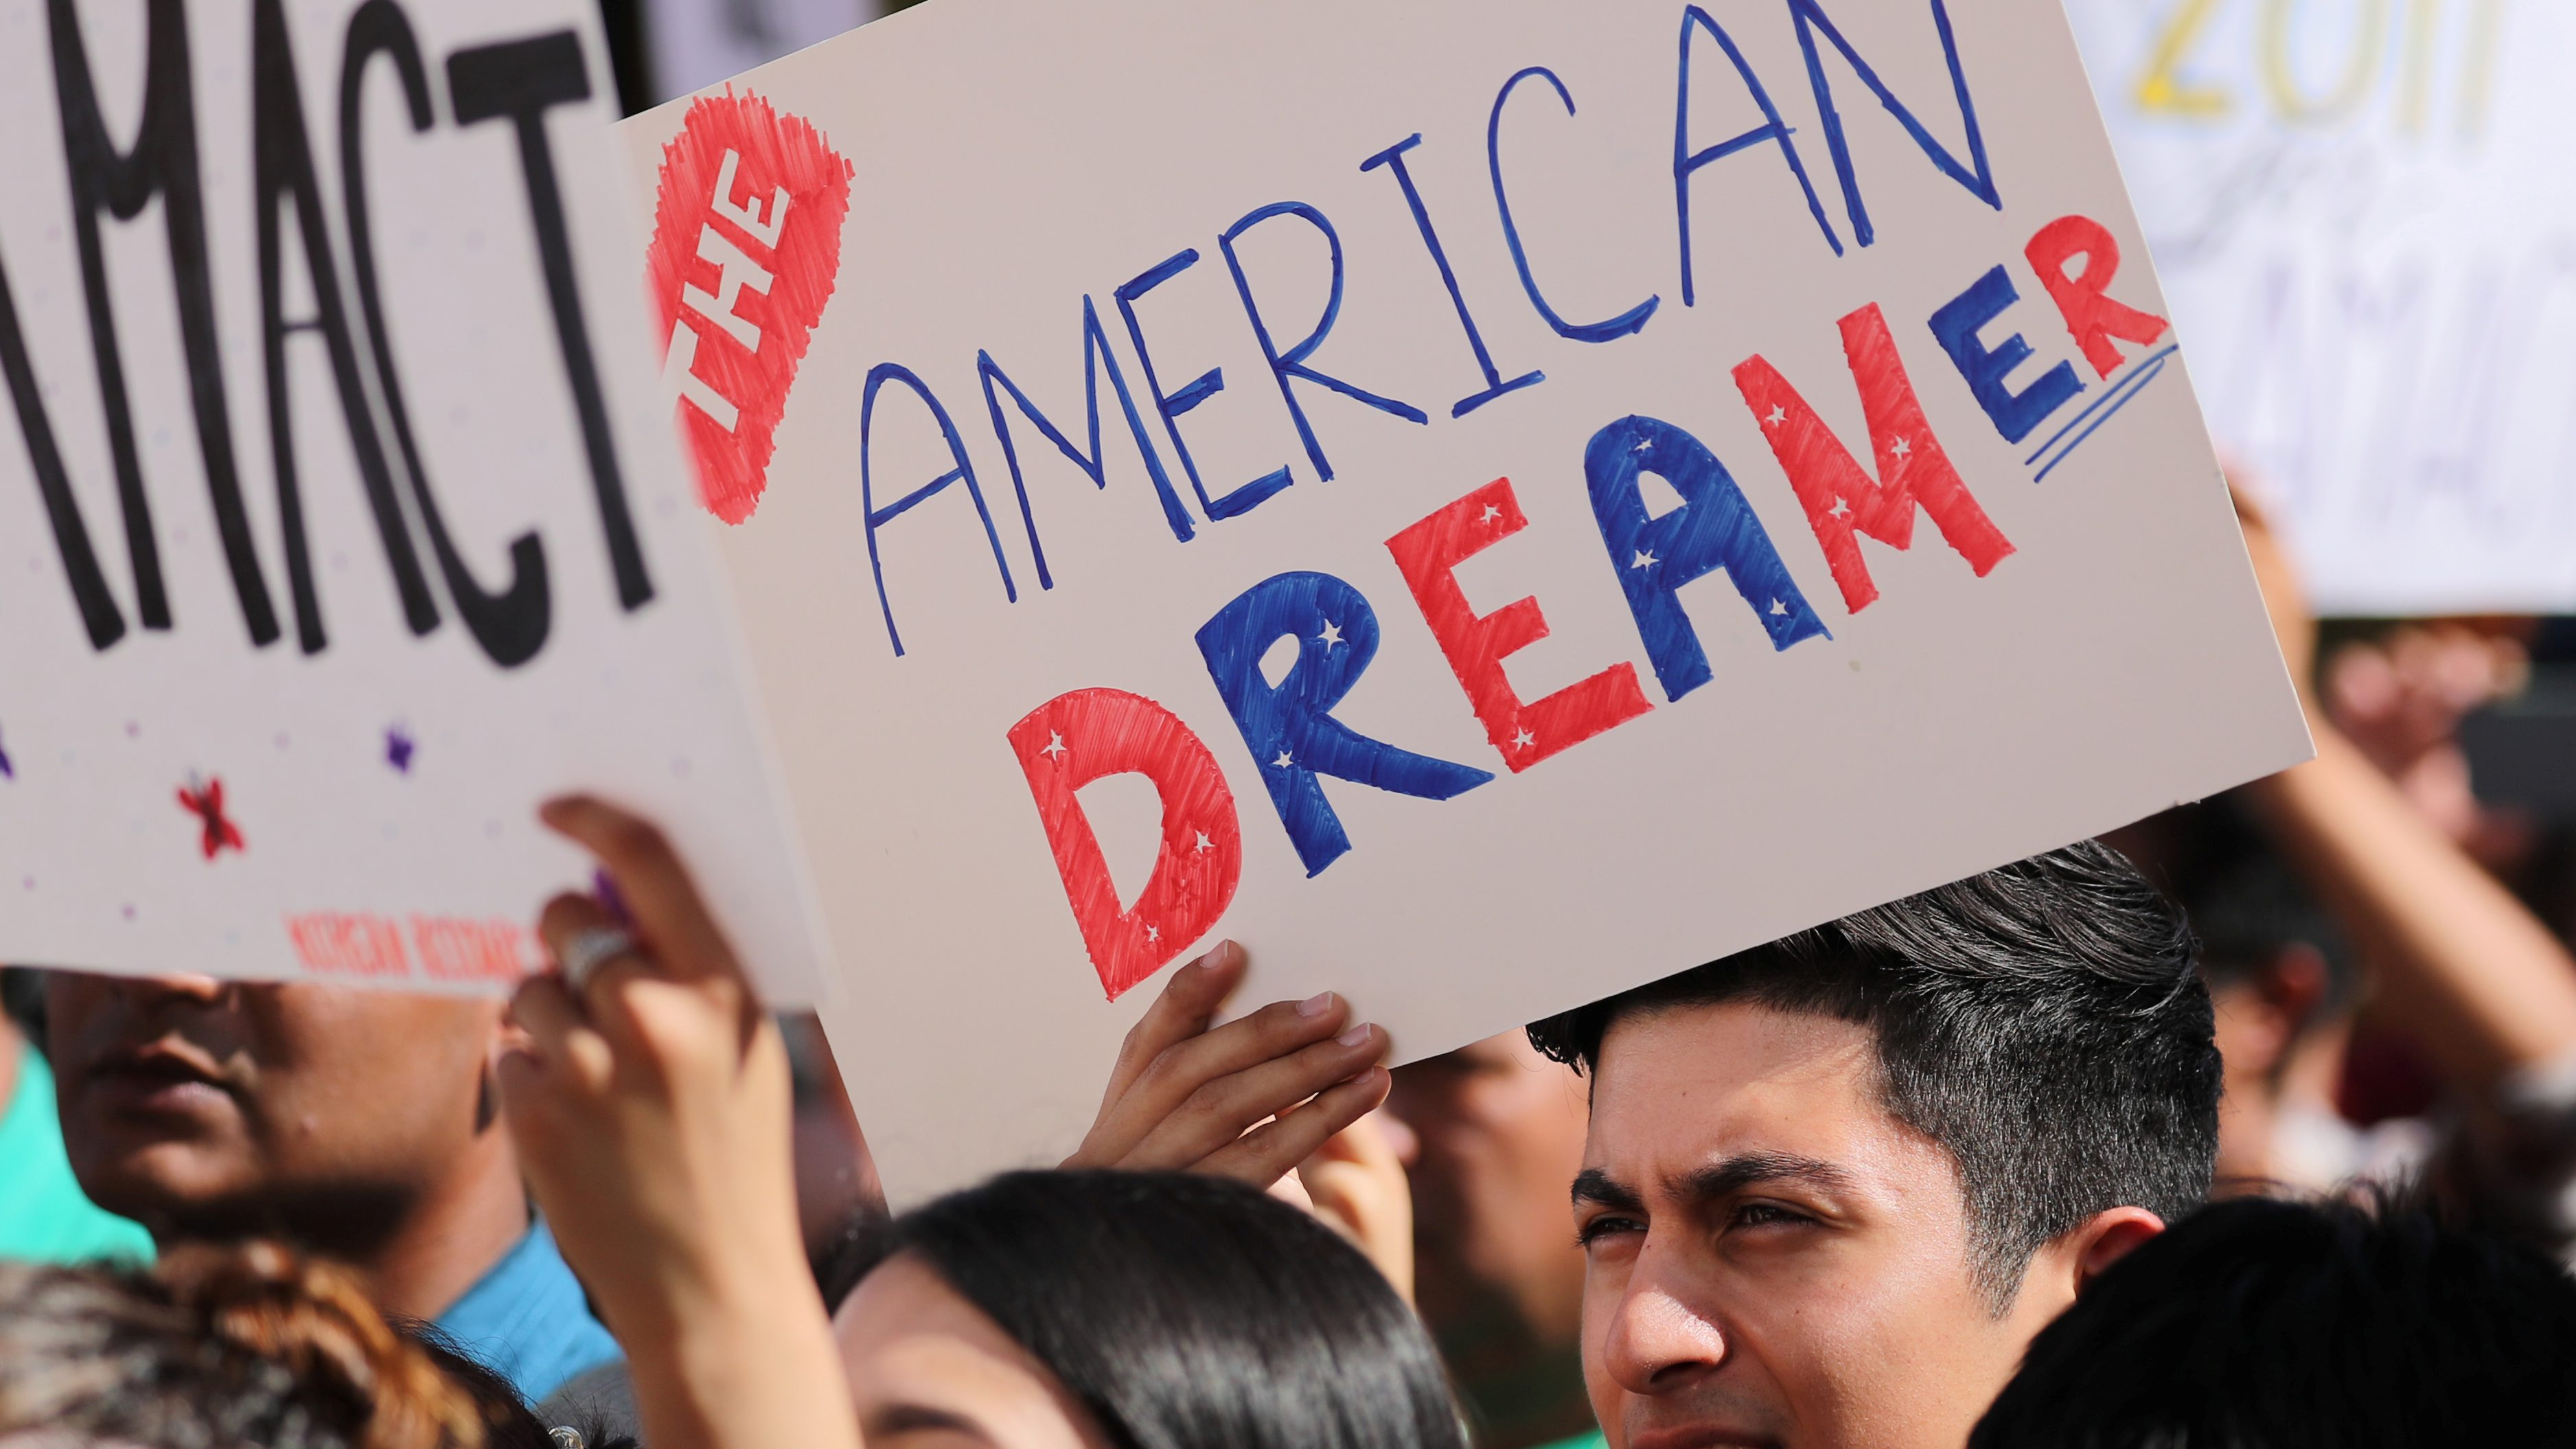 Students gather in support of DACA at the UC in Irvine, California